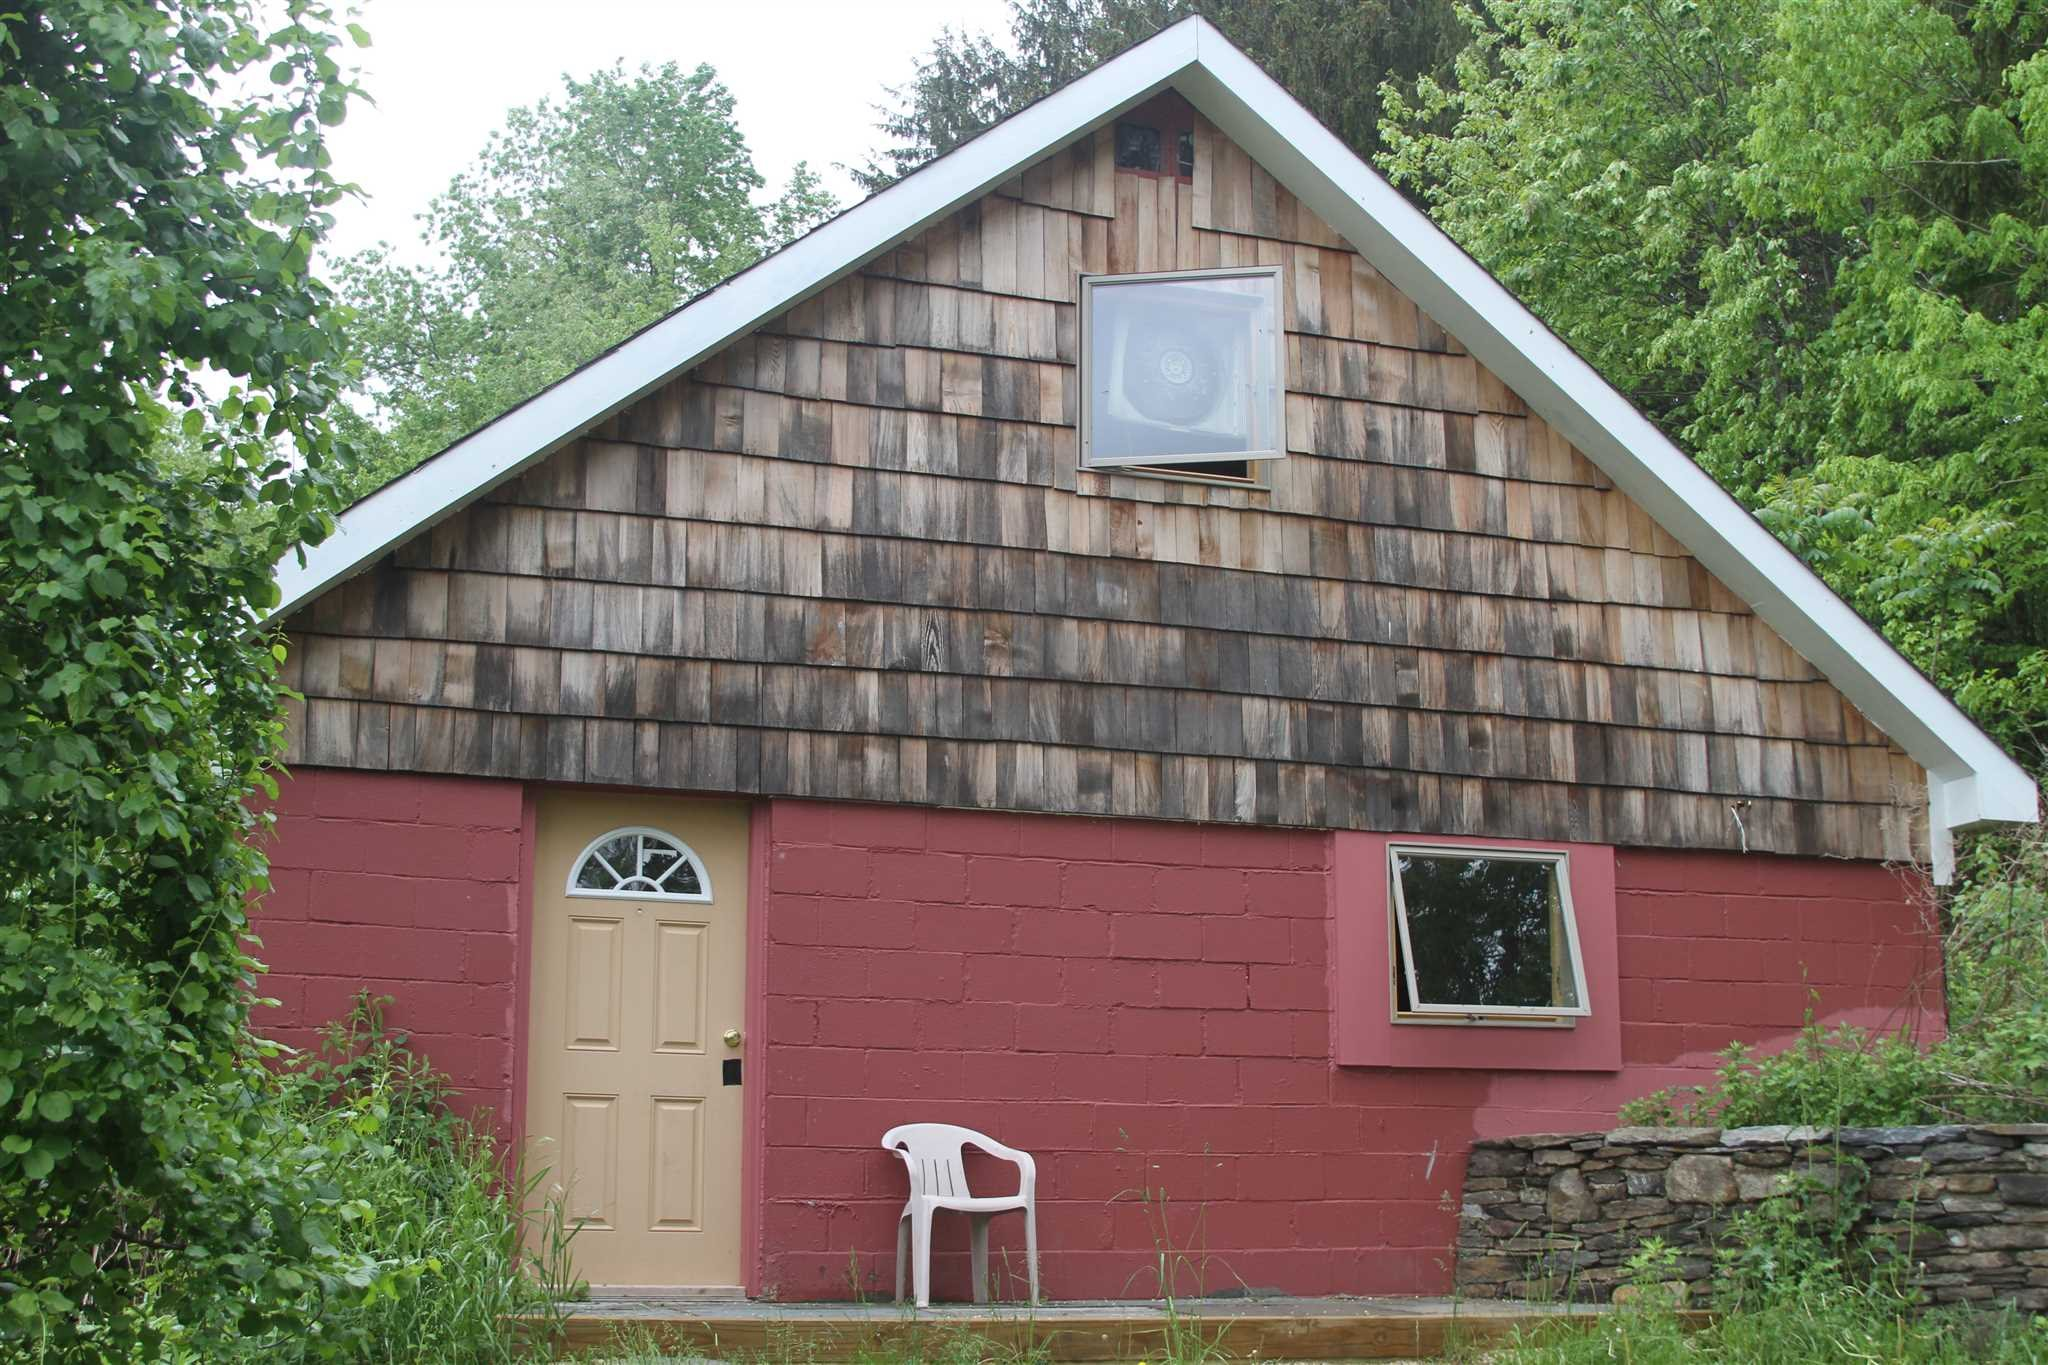 Single Family Home for Sale at 6425 ROUTE 22 6425 ROUTE 22 Ancram, New York 12546 United States